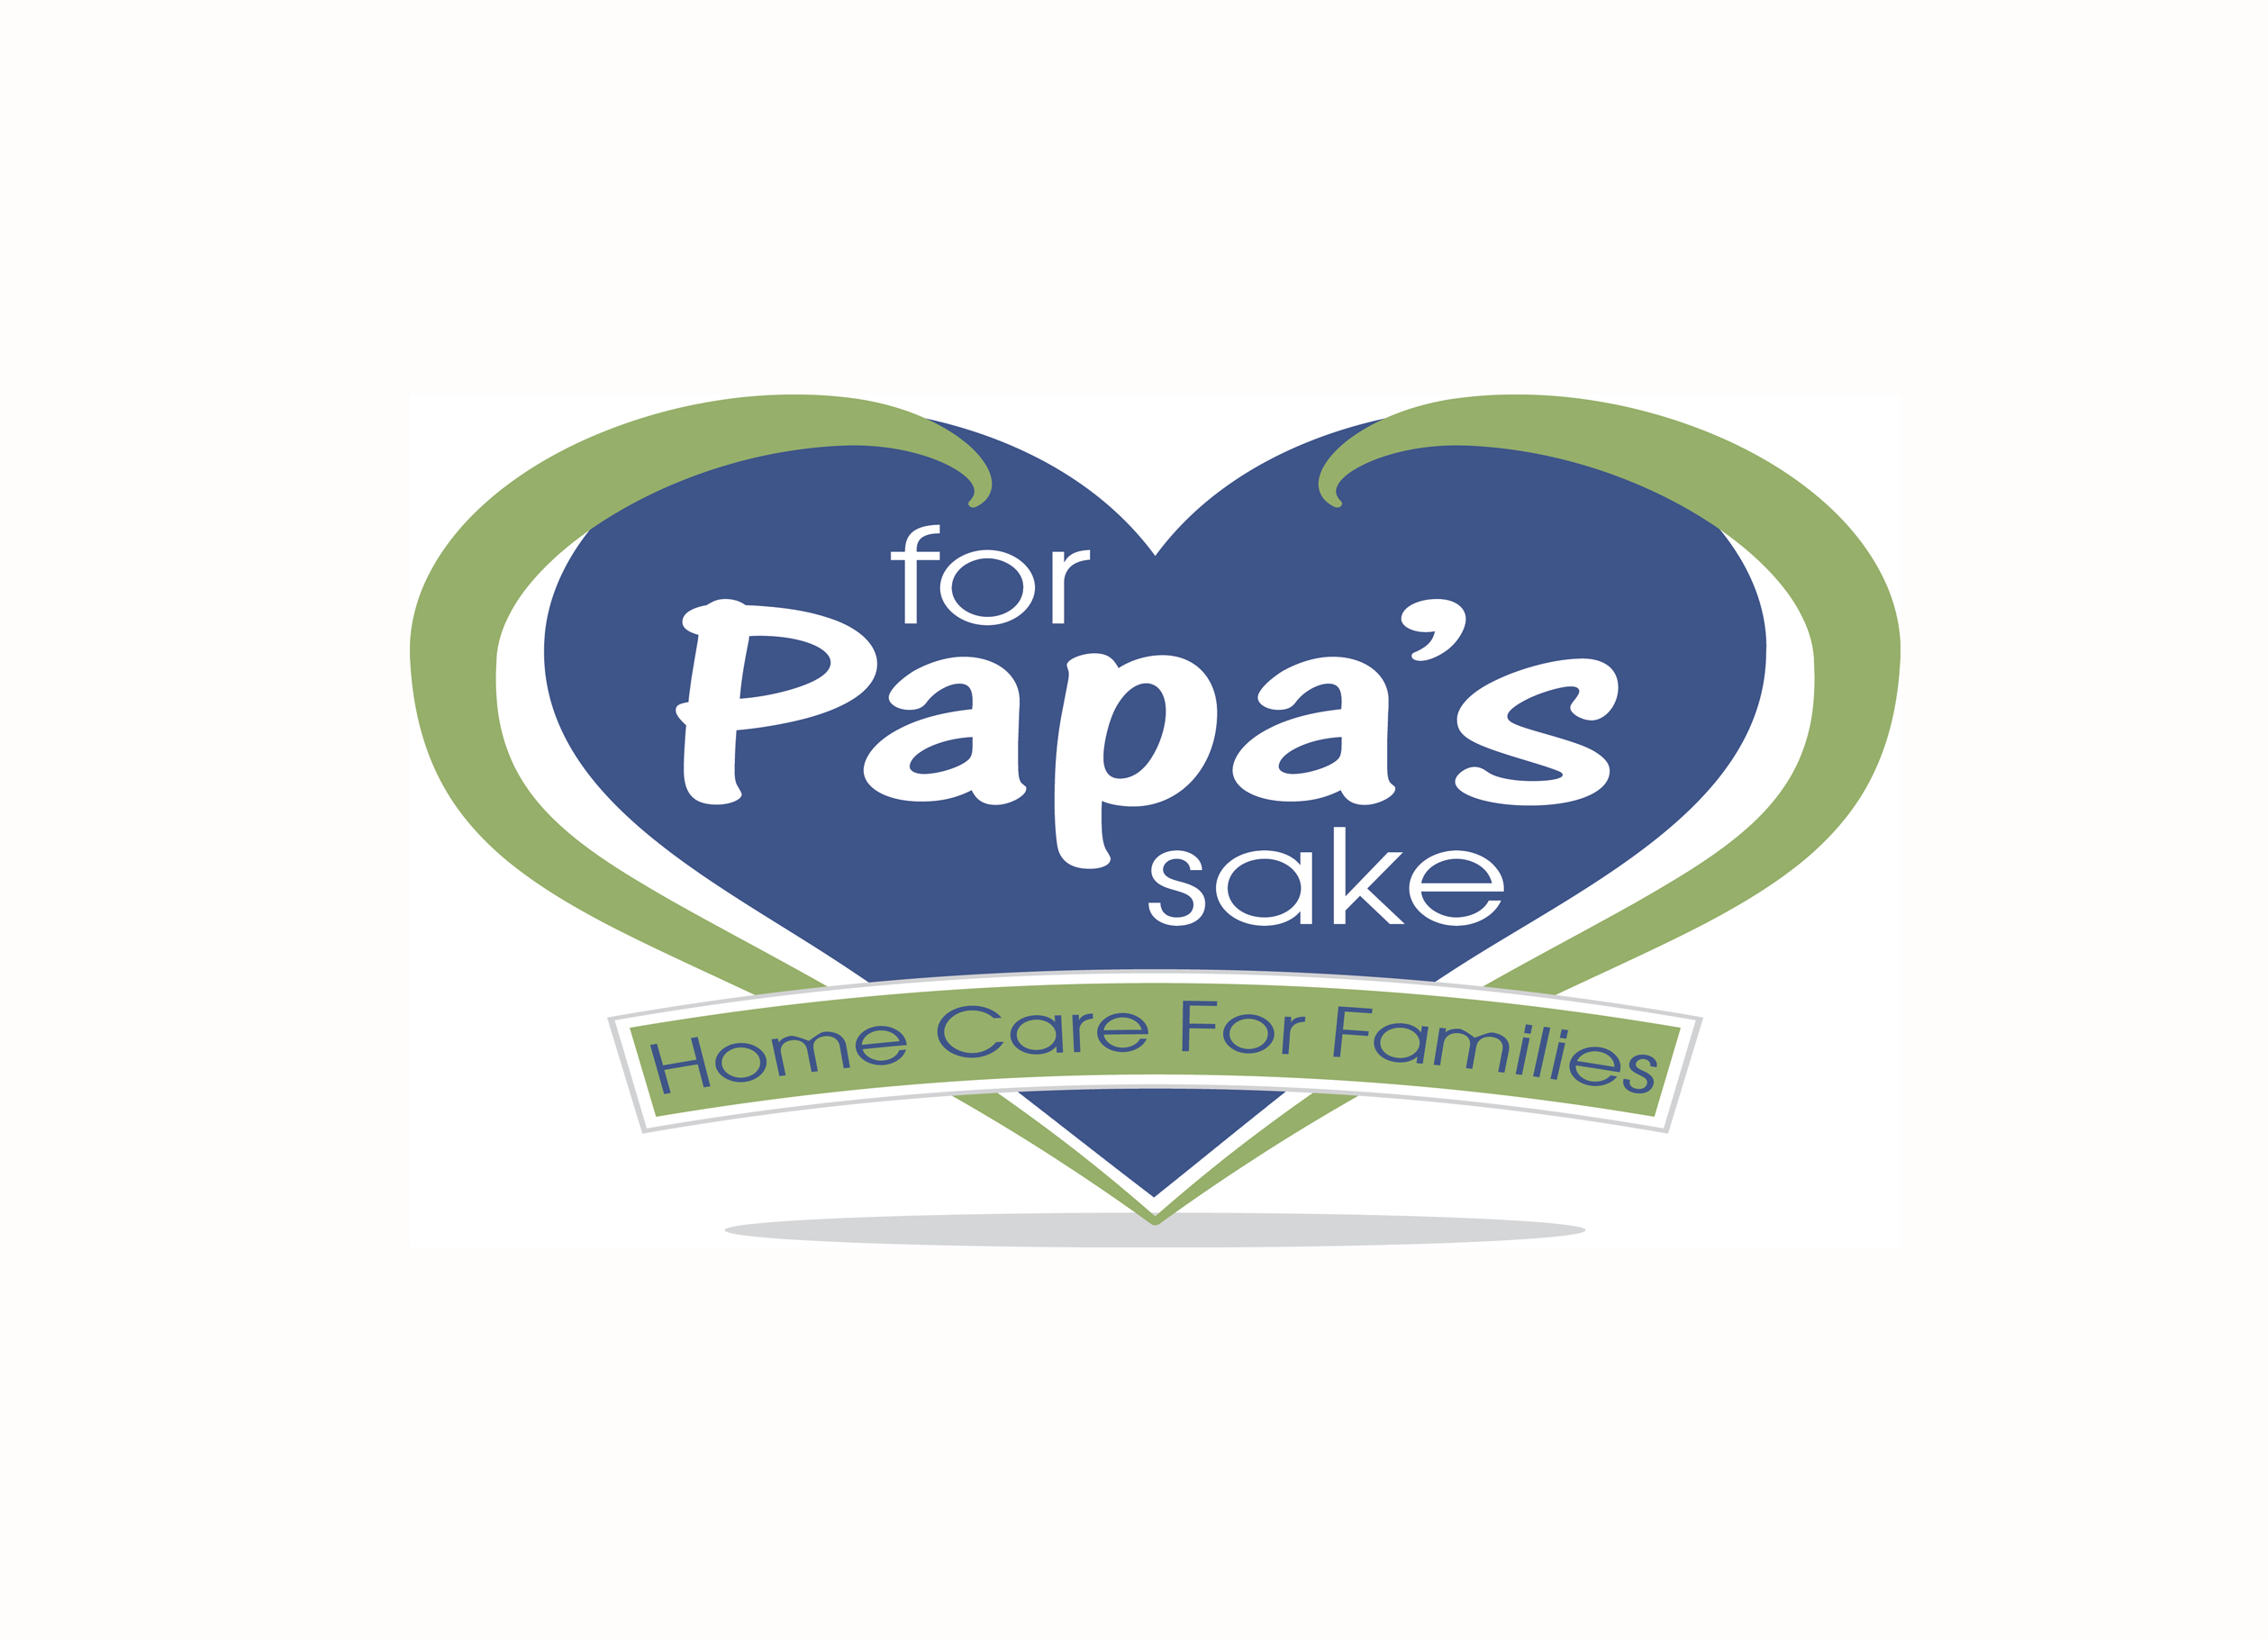 For Papa's Sake Home Care For Family